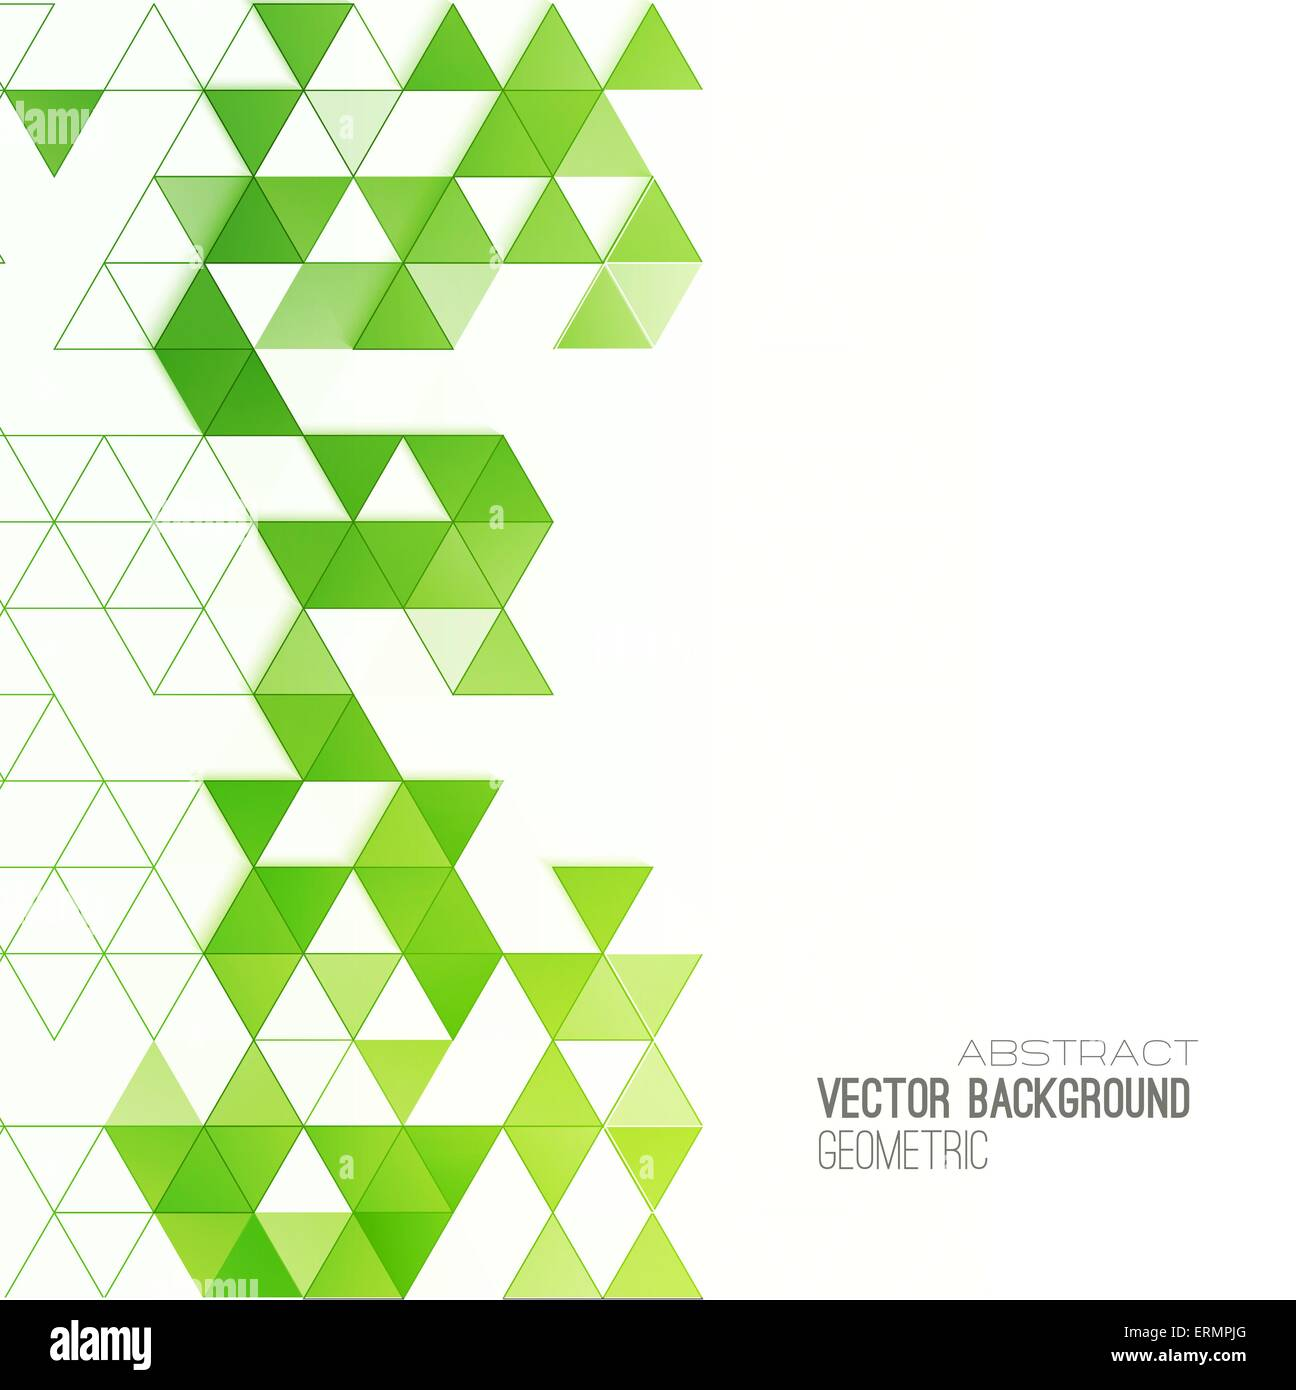 Abstract geometric background with color triangles  Vector